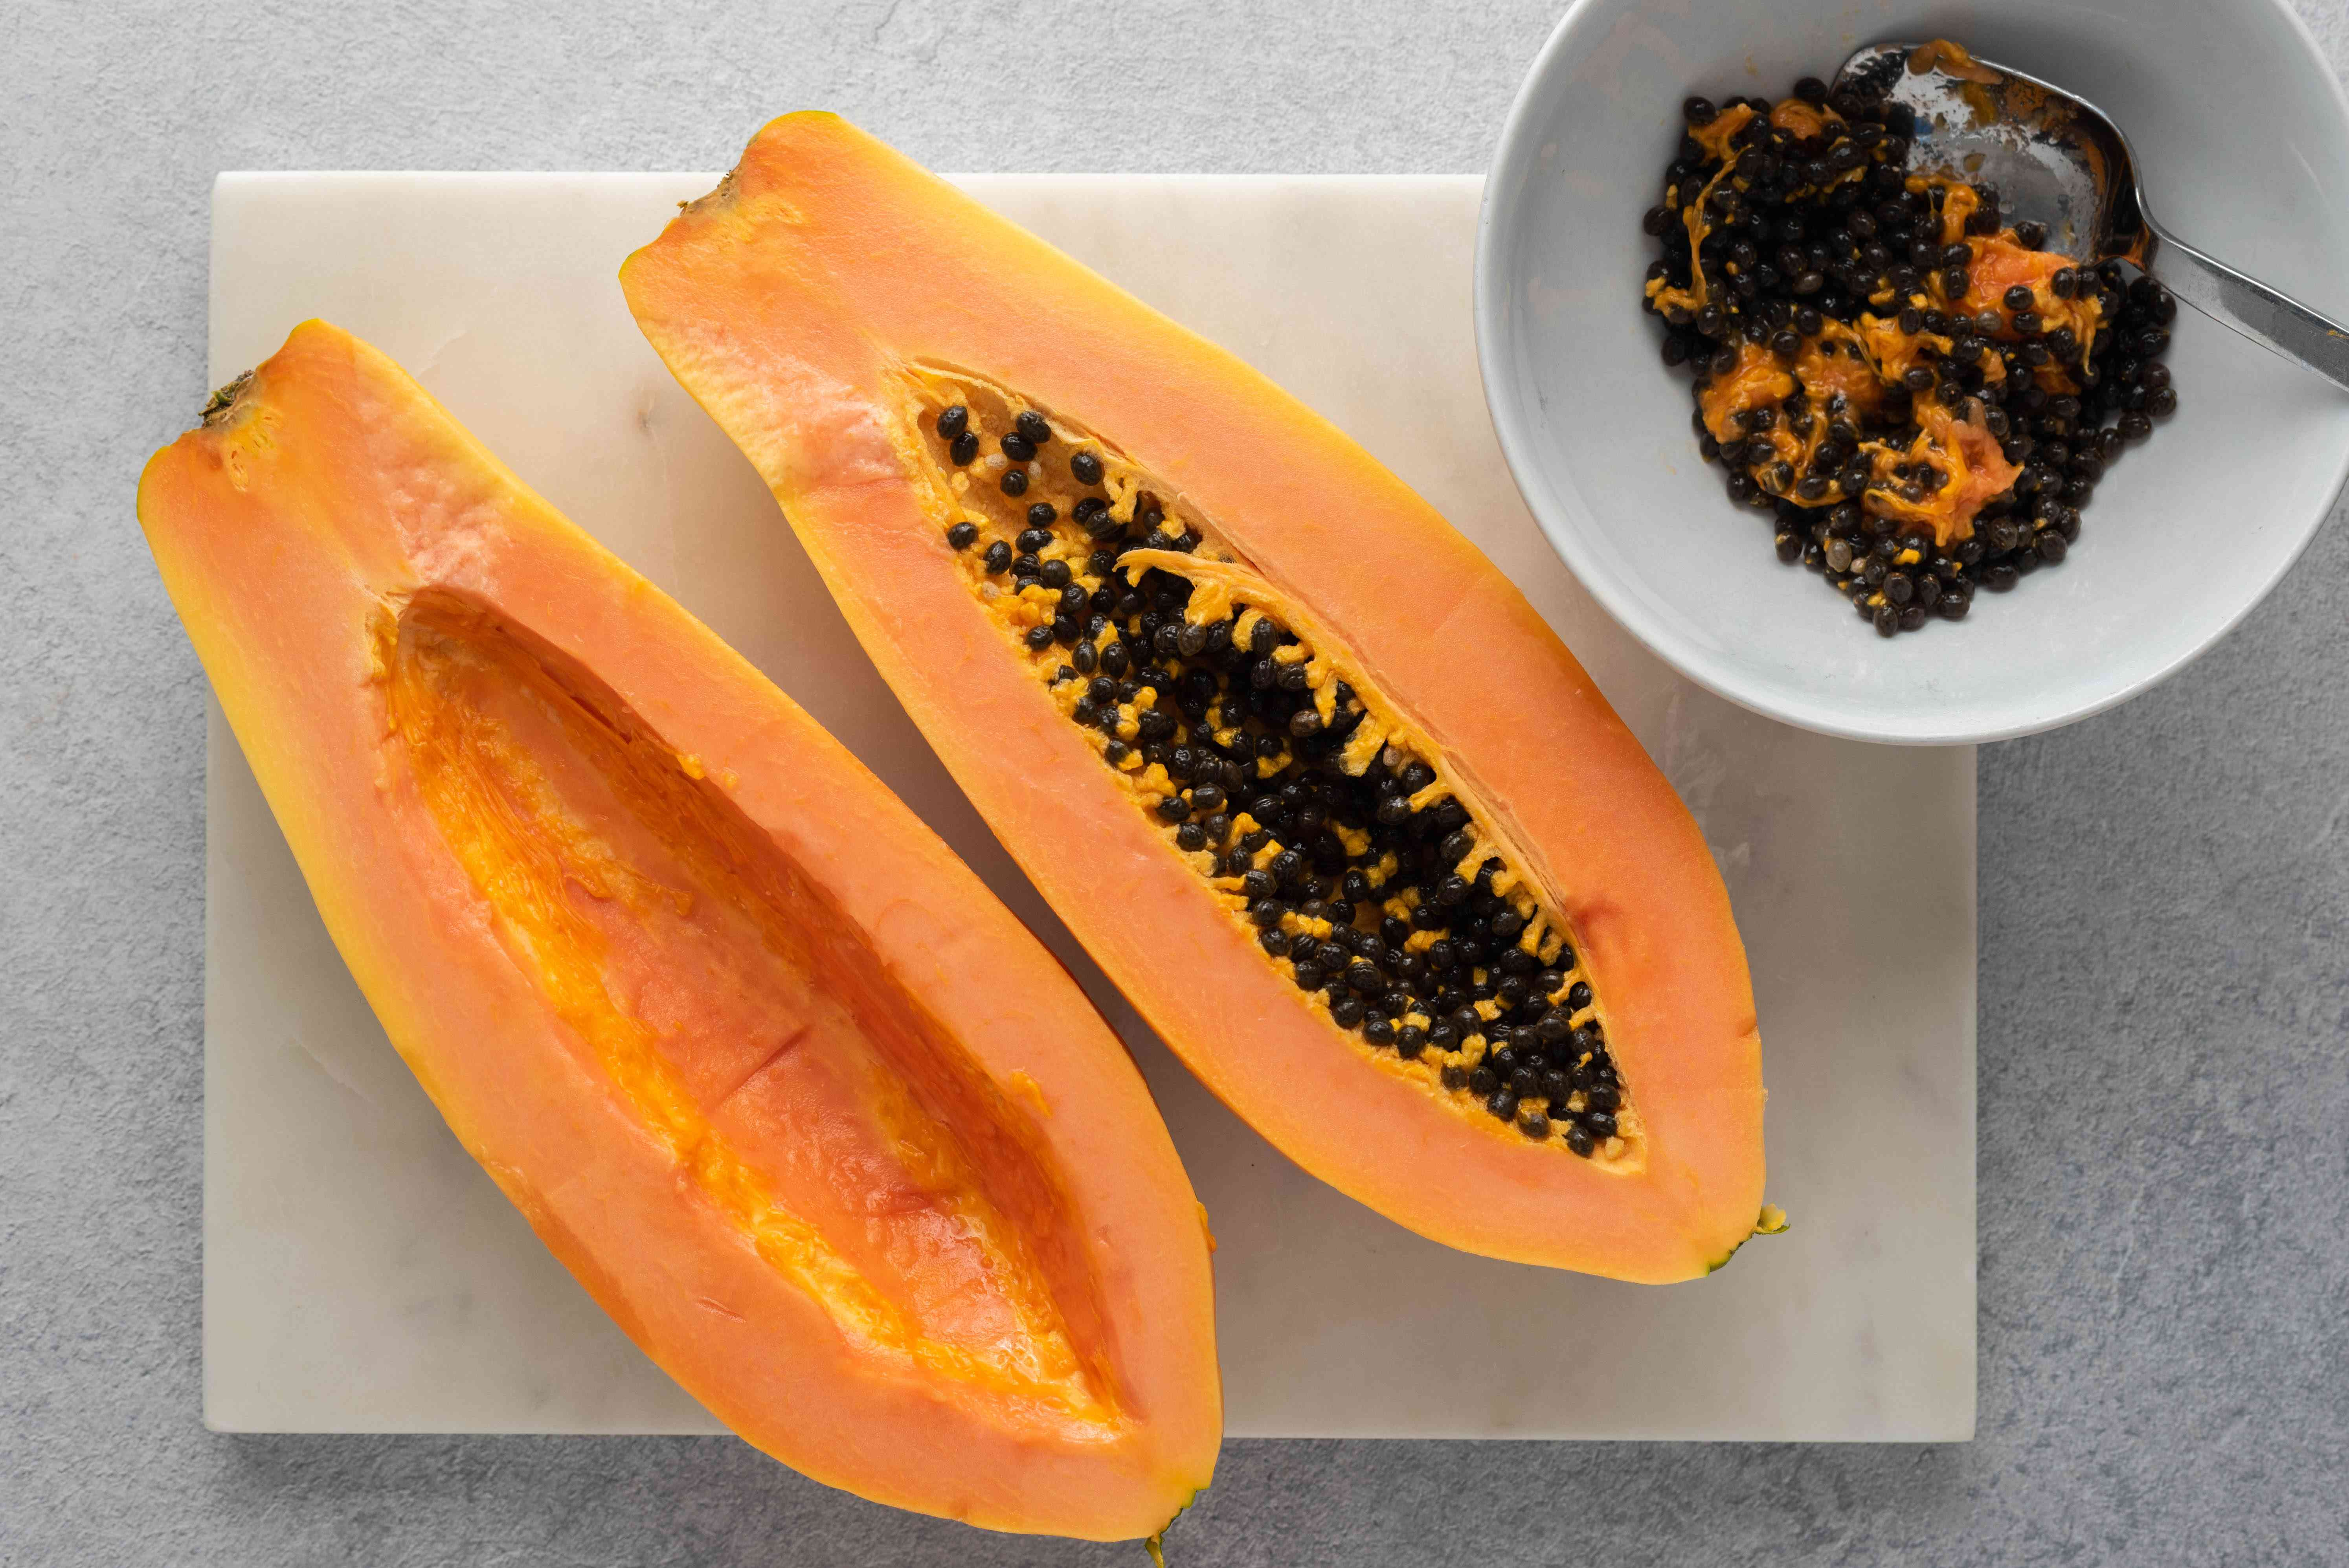 papaya cut in half with seeds removed